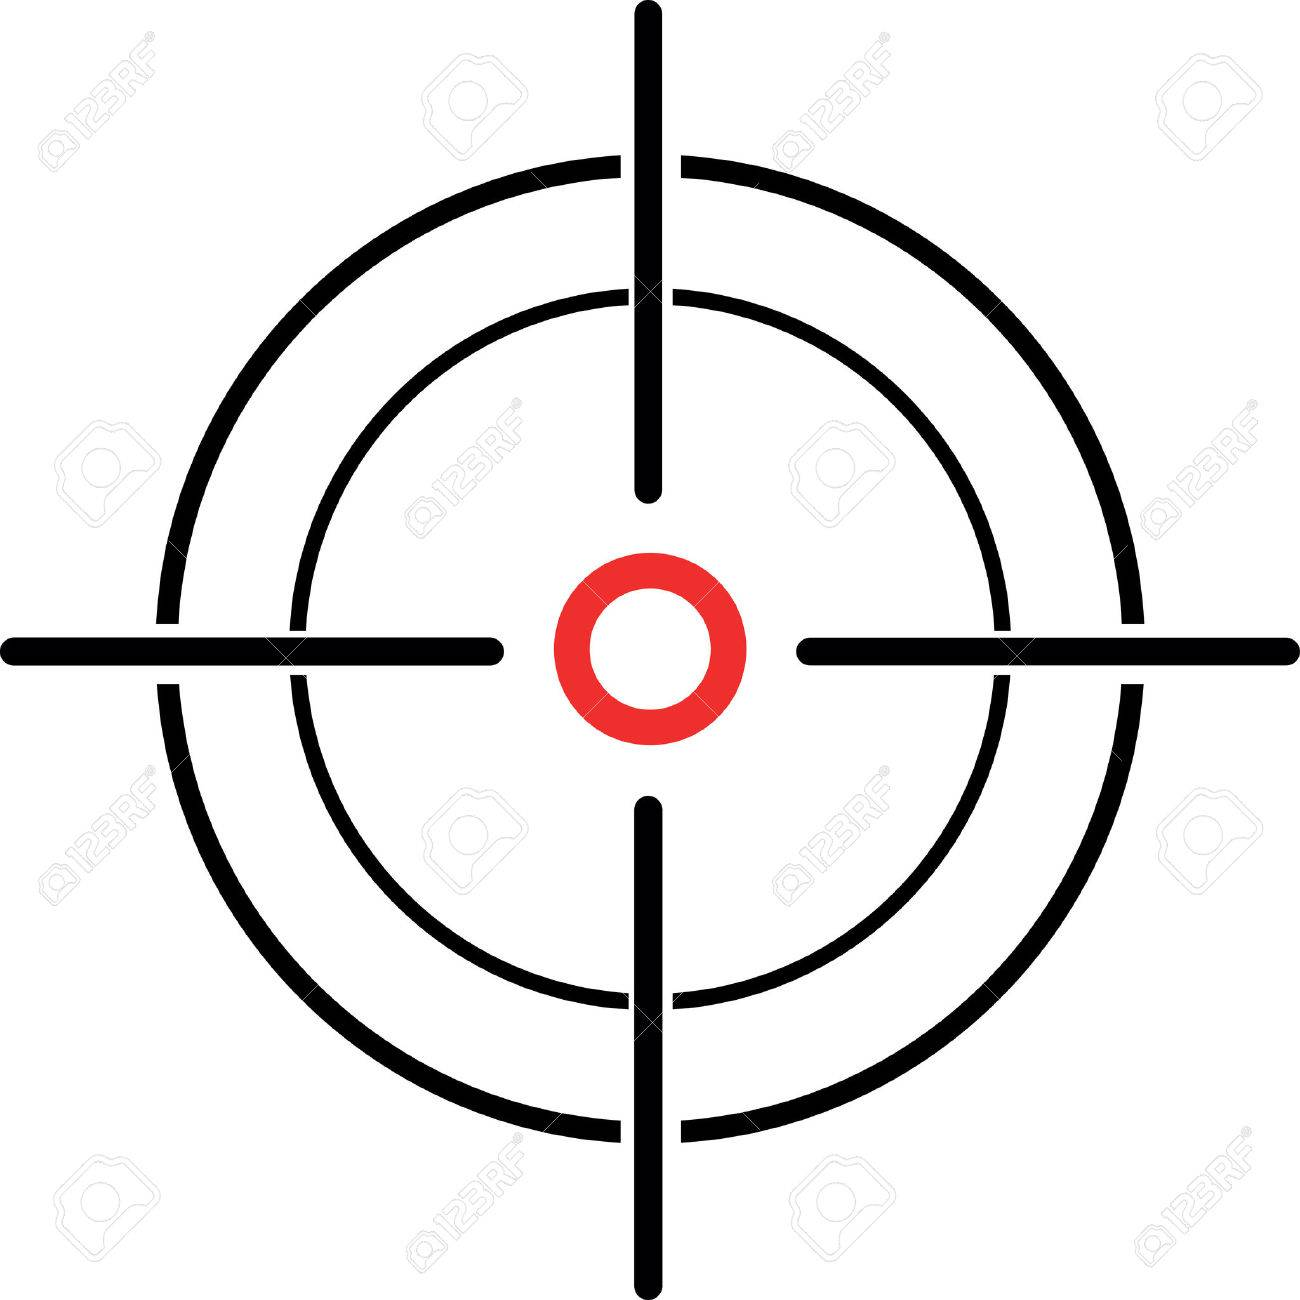 An Illustration of a crosshair reticle on a white background - 31011145